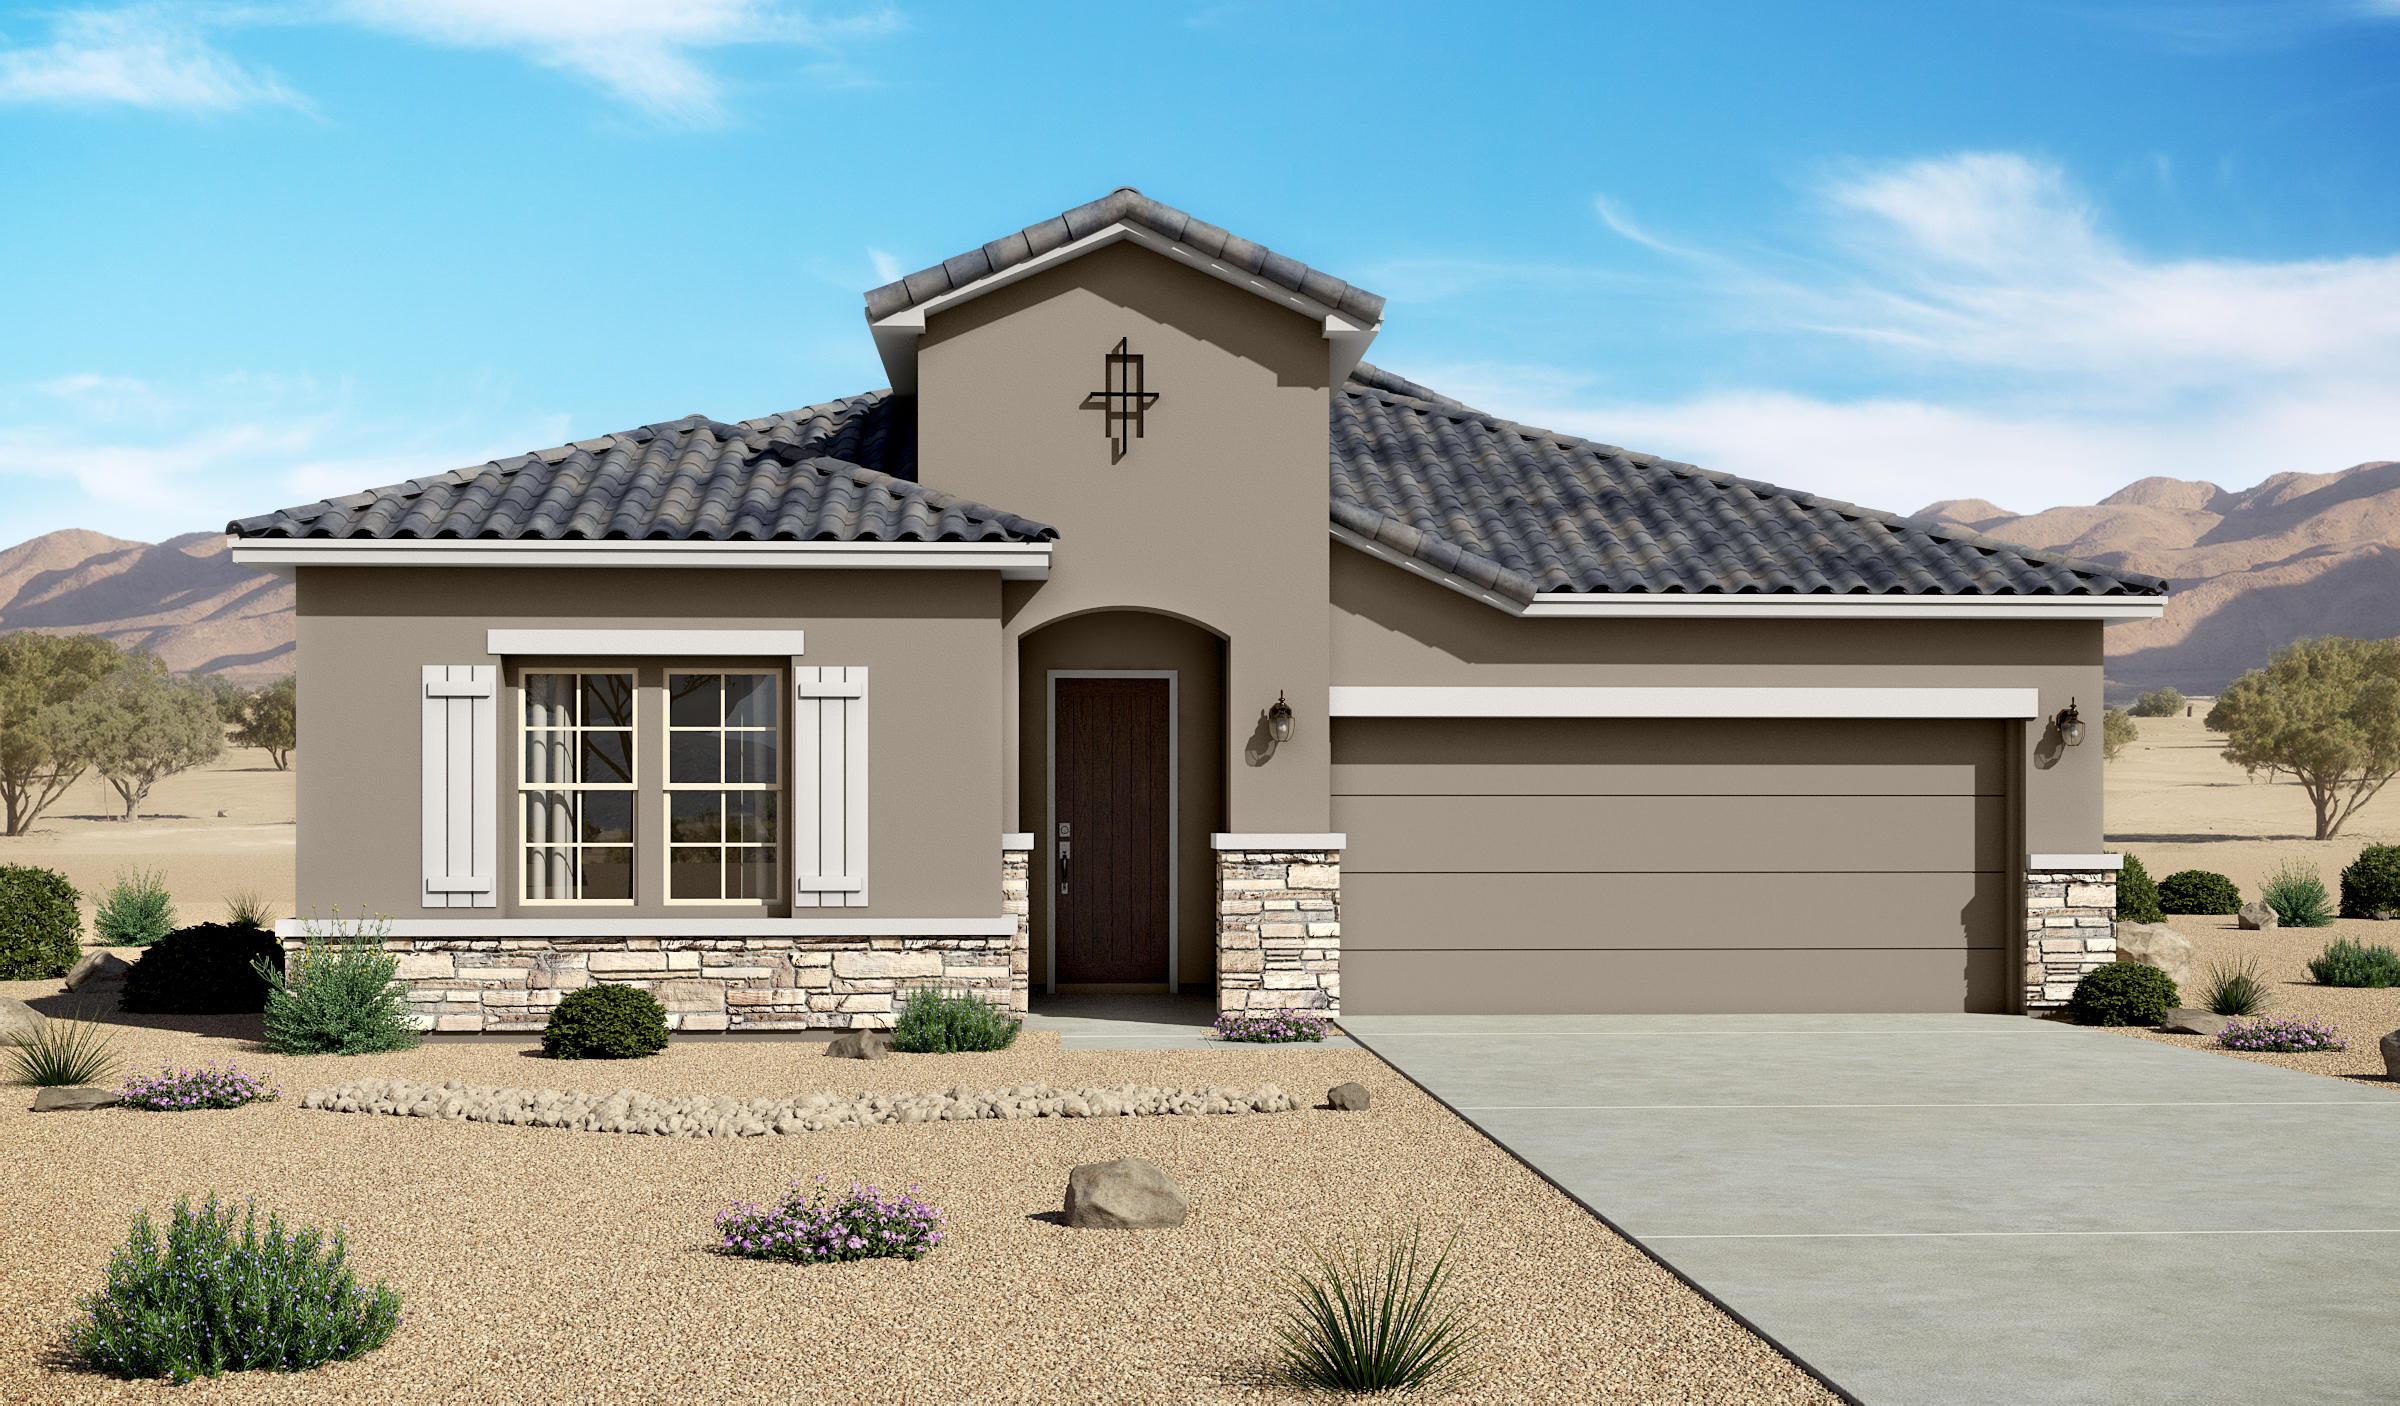 Estimated Completion Date: 12:15;20202119 sf Tuscan Lomas Encantadas Unit 2C Phase 3 Block 1 lot 3536'' Traditional fireplace;pendant lighting over kitchen island;12'' under cabinet lighting; Tiled master bath and shower;8' doors; Gourmet kitchen with farm sink; tiled floors and bathroom walls, carpet in bedrooms and closets.